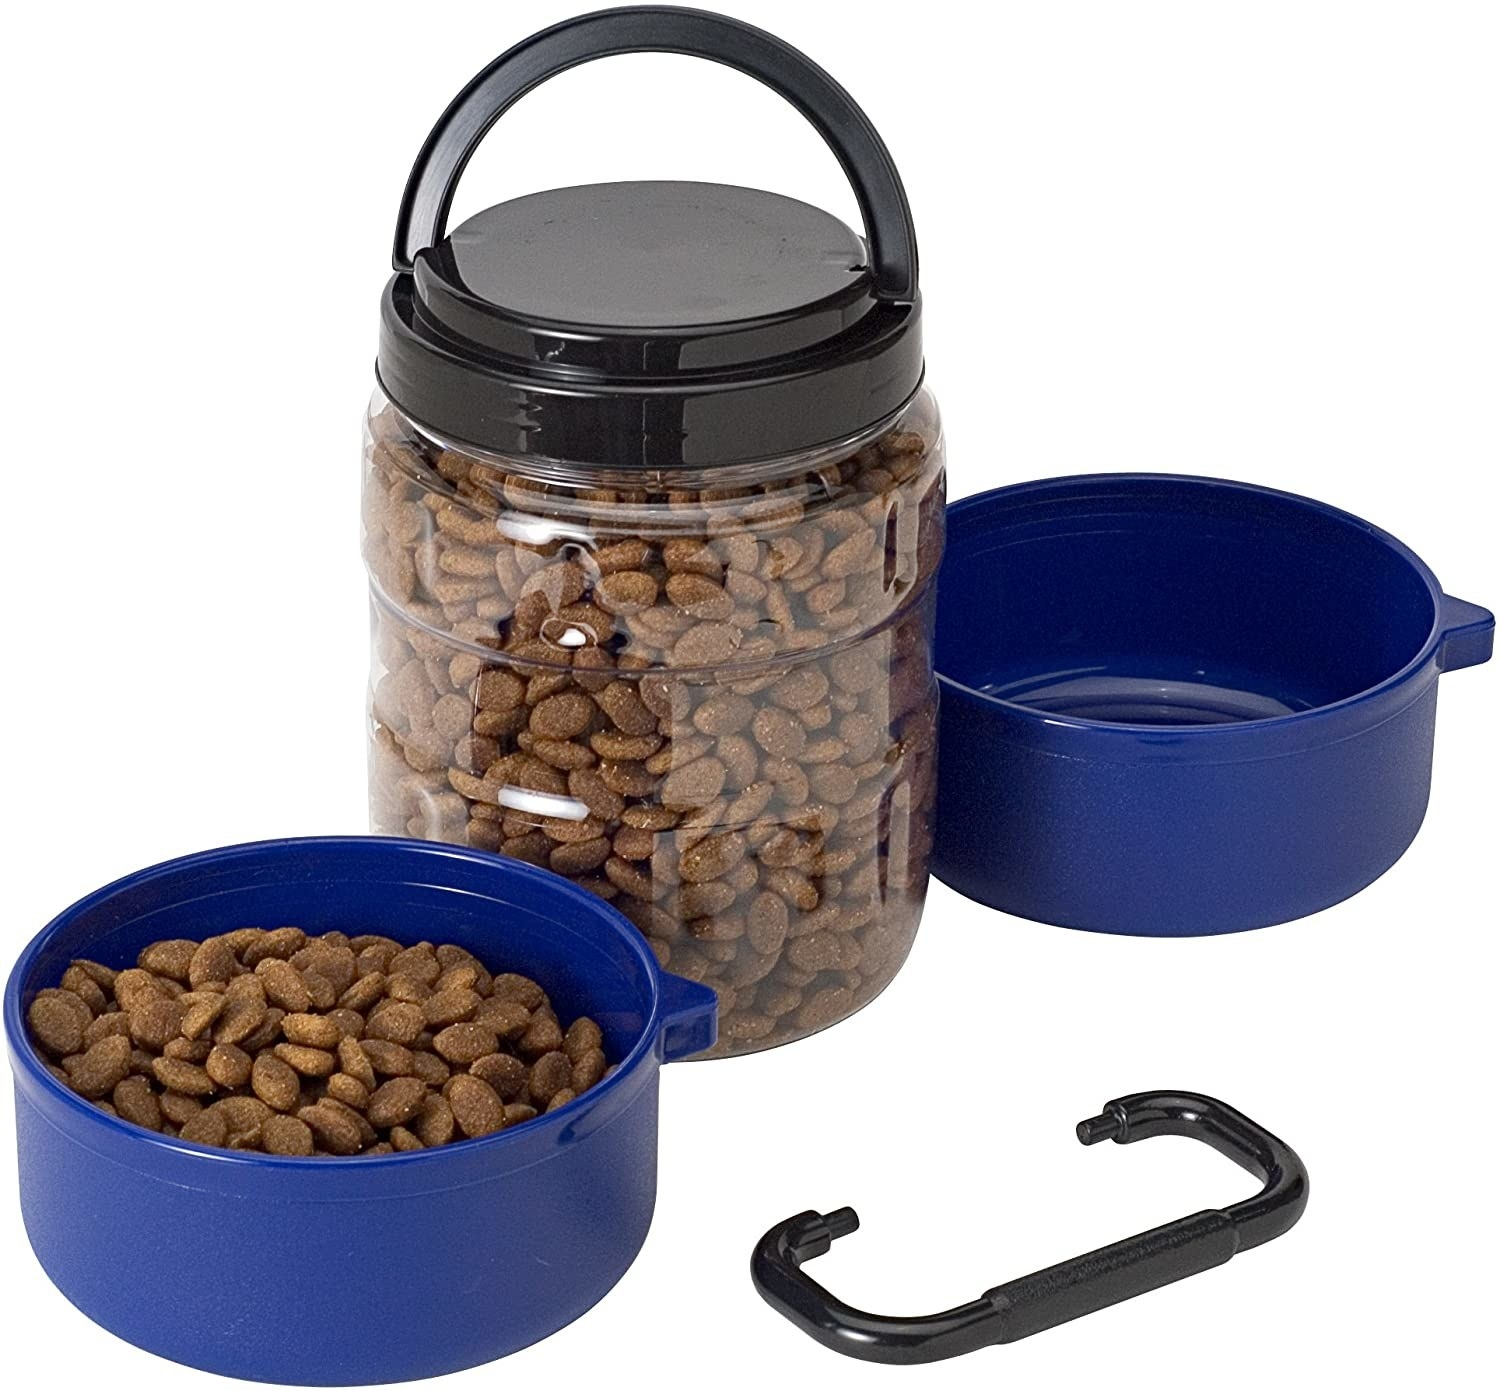 Dog Food carrier with two detachable bowls